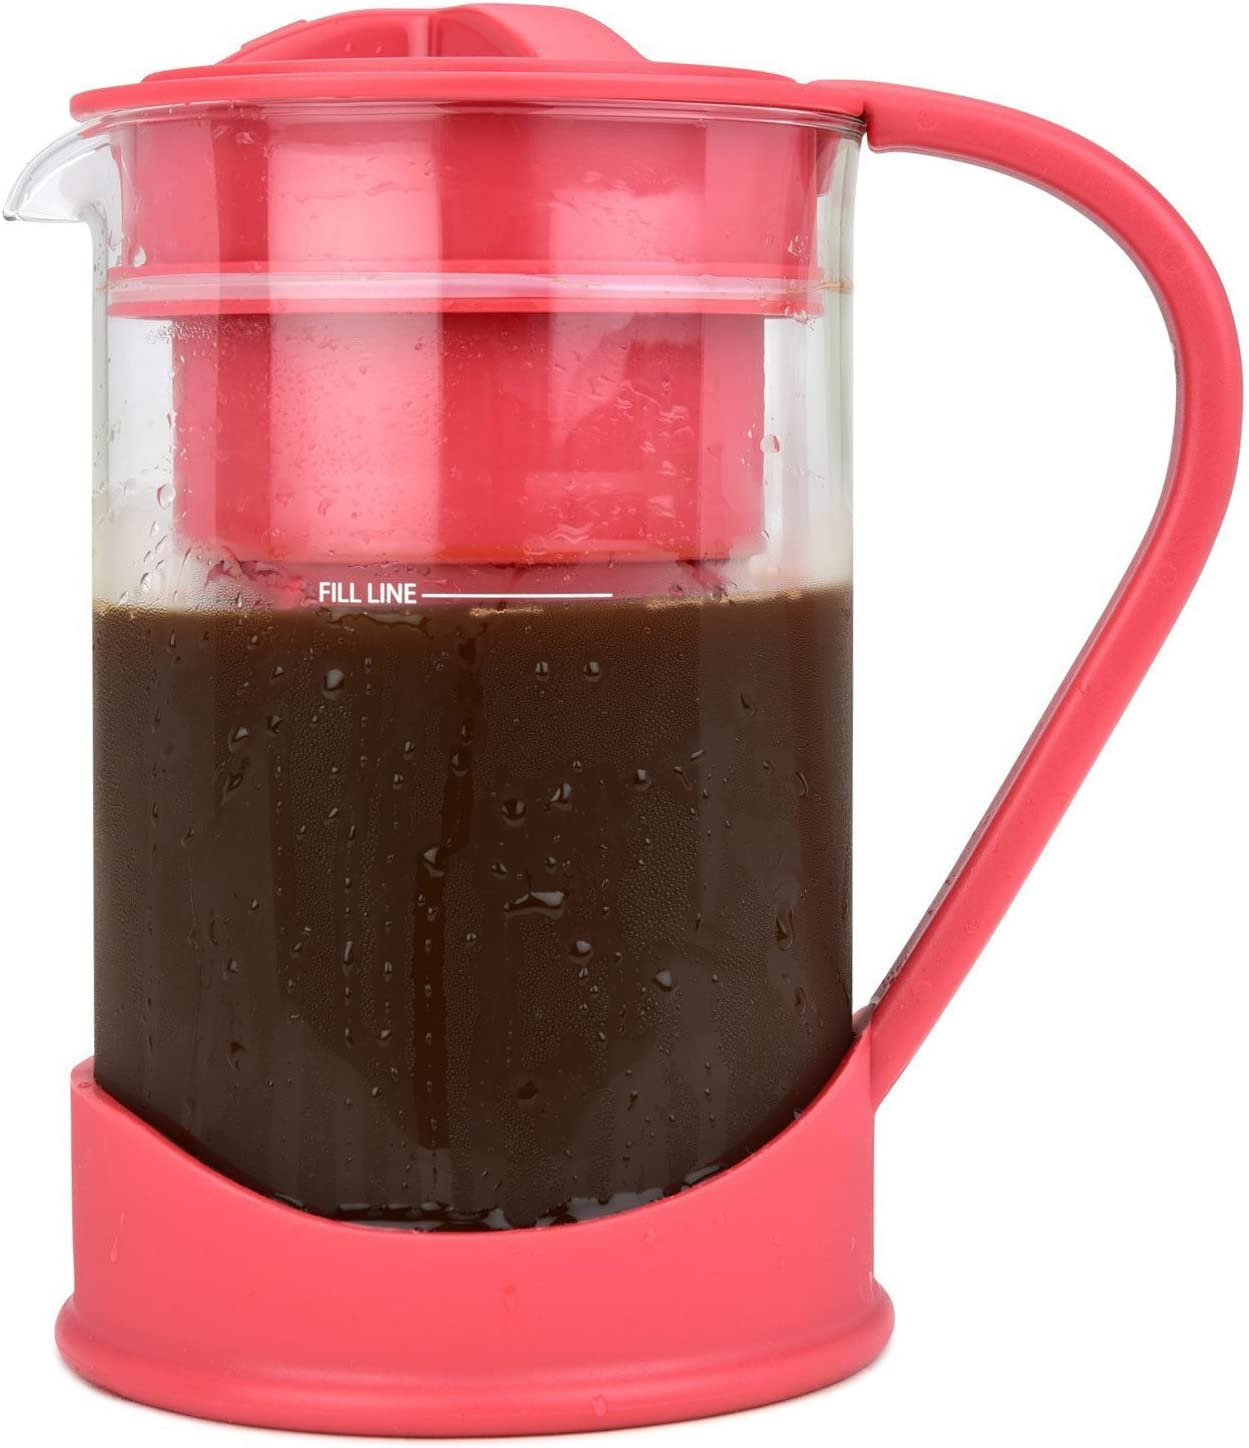 Spigo Cold Brew Coffee Maker 1 Liter 4 Cups Capacity Great For Flavorful Iced Coffee That Stays Fresh Longer Borosilicate Glass Easy Cleaning Fun Ideas And Recipe Booklet 8x5 Inches Red Home